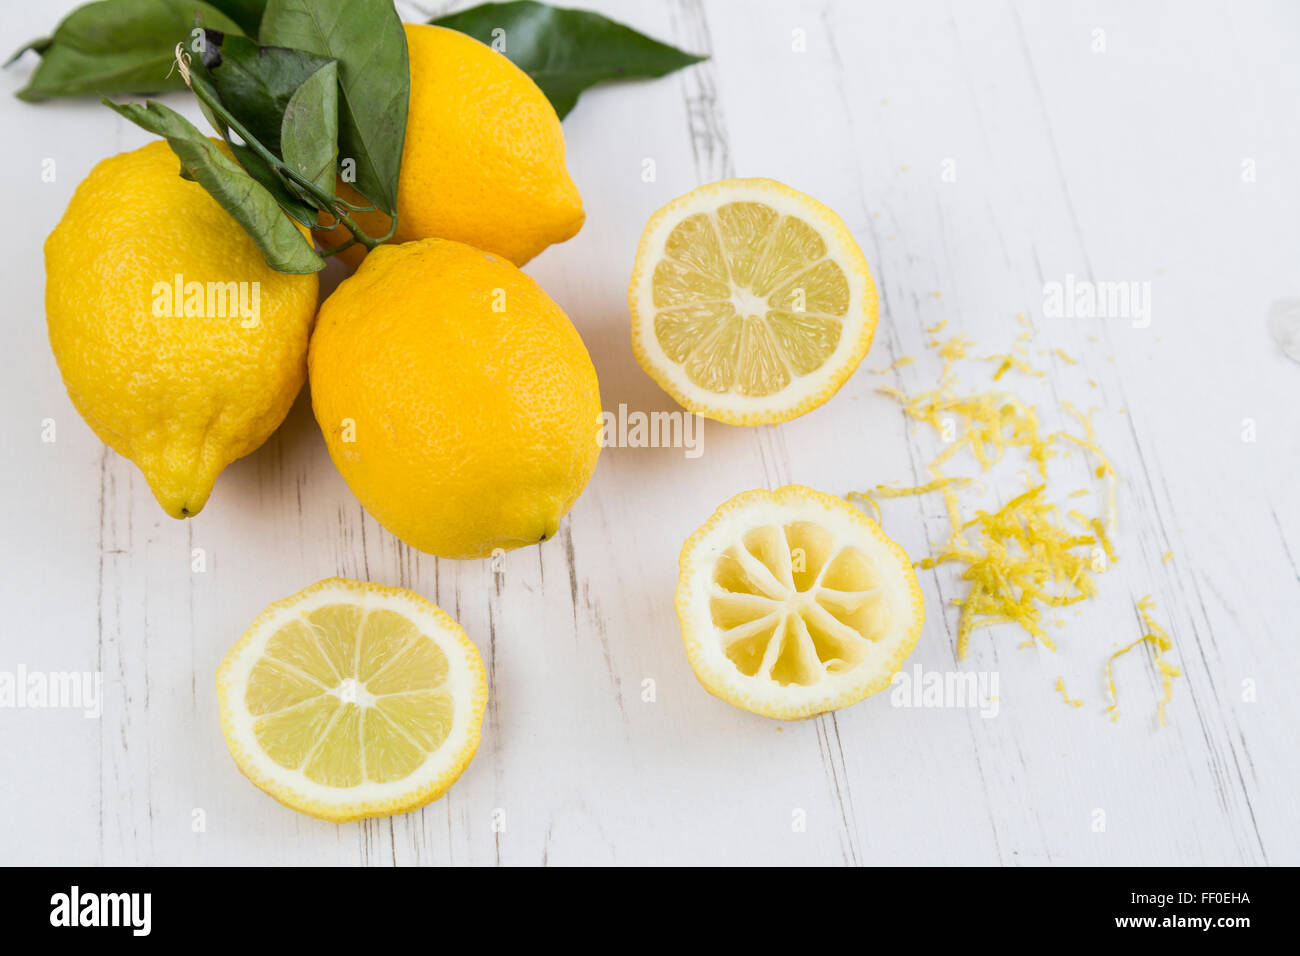 Lemons, slices and zest on a white table - Stock Image